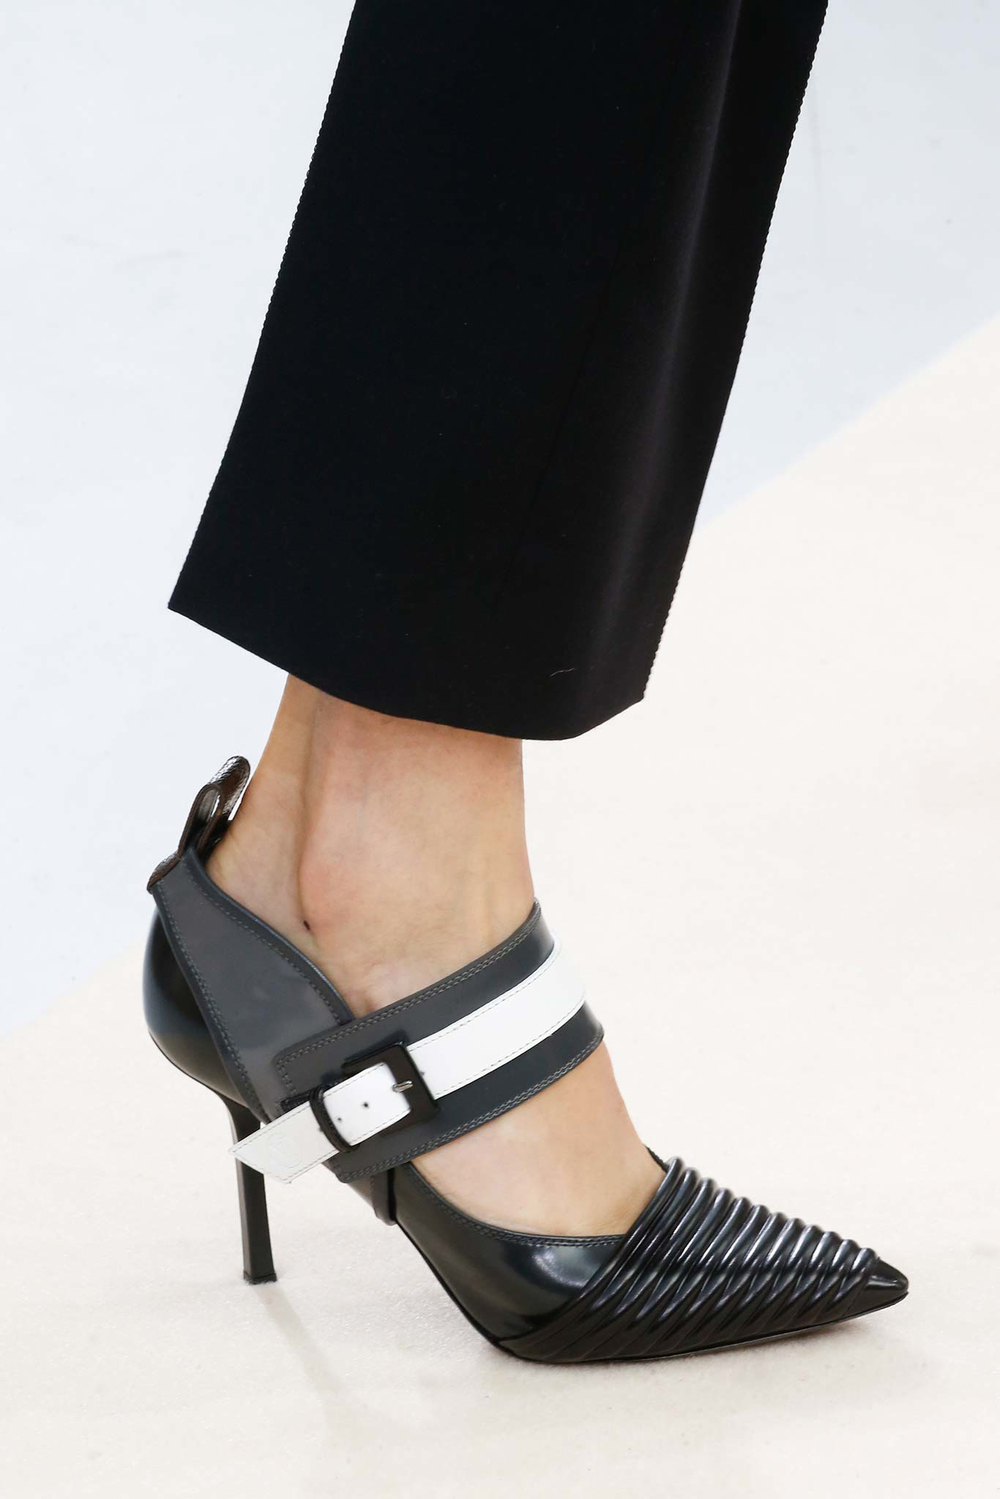 10-01-accessories-trends-fall-2015-mary-janes.jpg